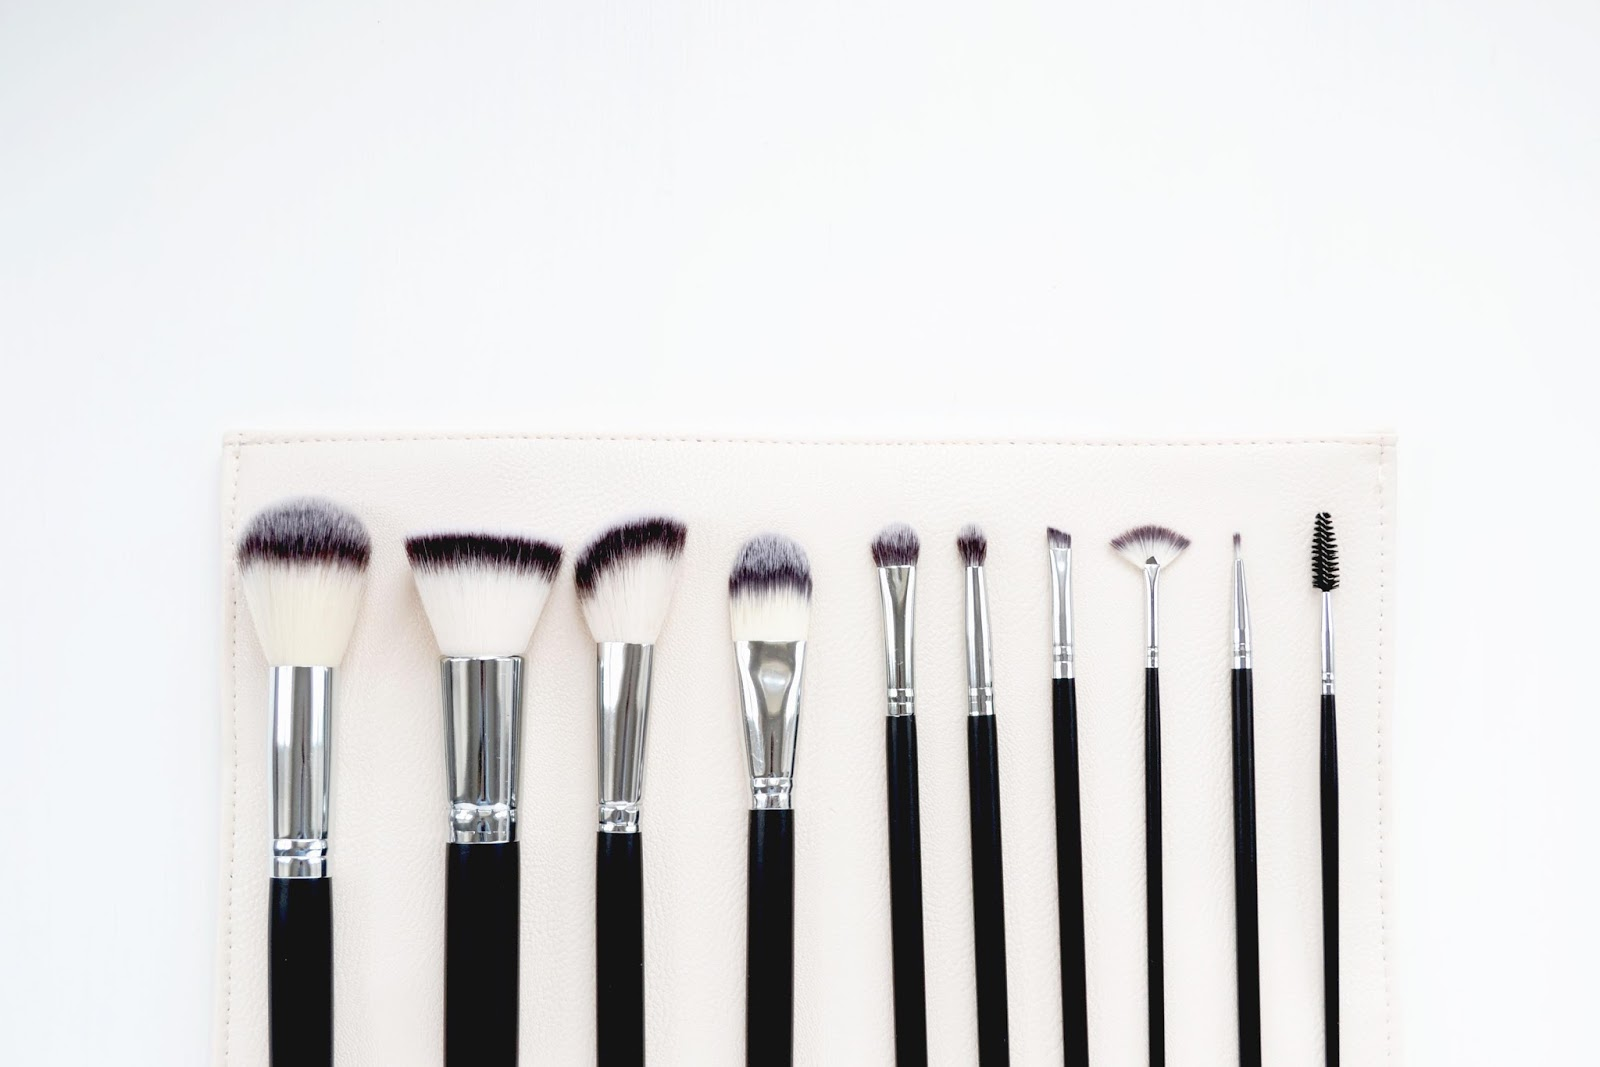 a set of make up brushes from Crownbrush UK